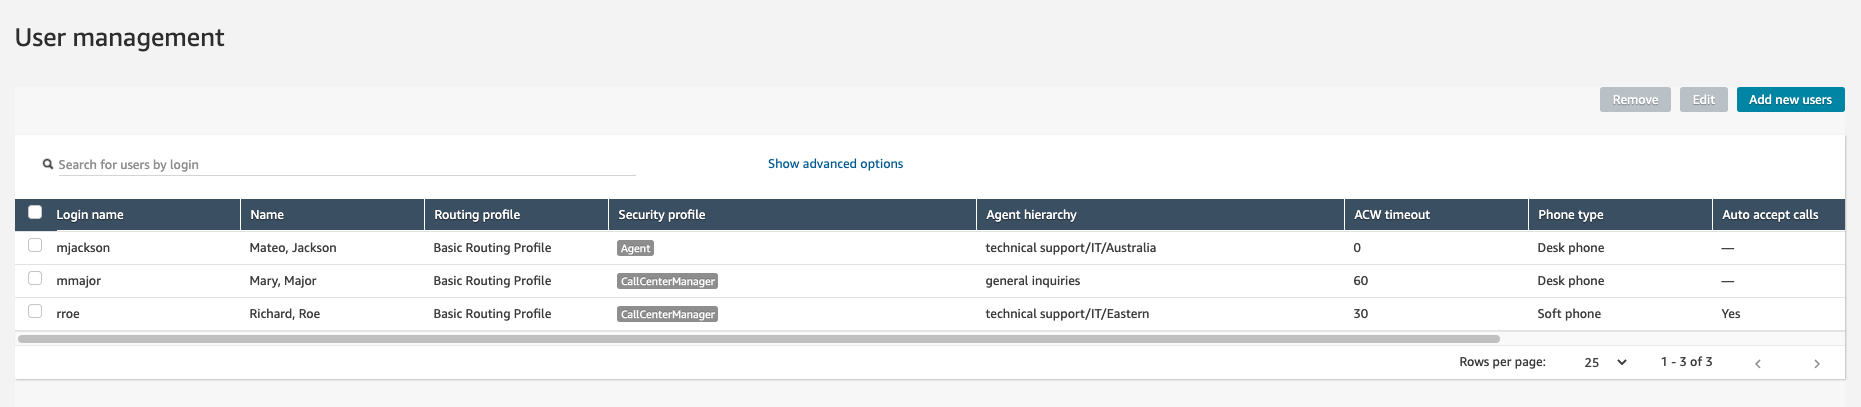 Screenshot showing users created in Amazon Connect